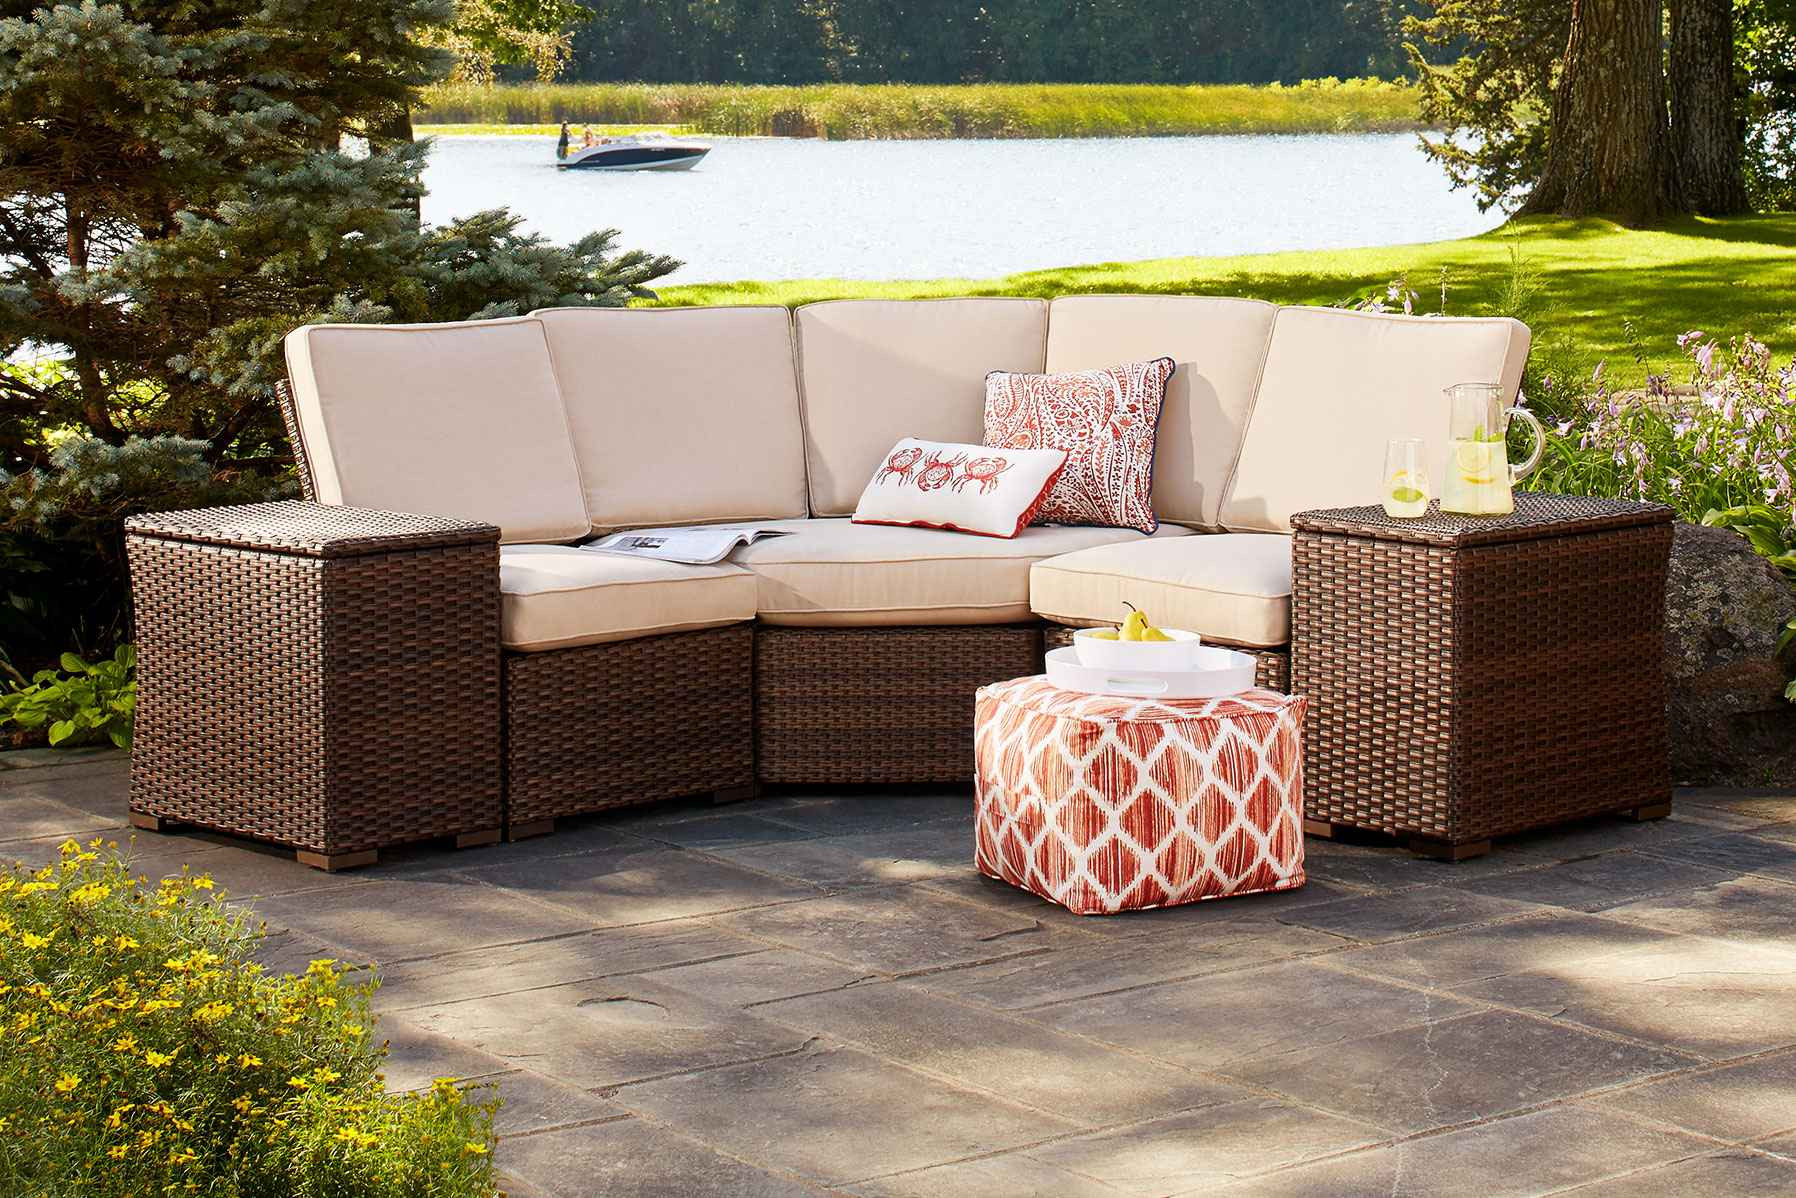 Best ideas about Patio Furniture Sets . Save or Pin Outdoor Furniture & Patio Furniture Sets Tar Now.